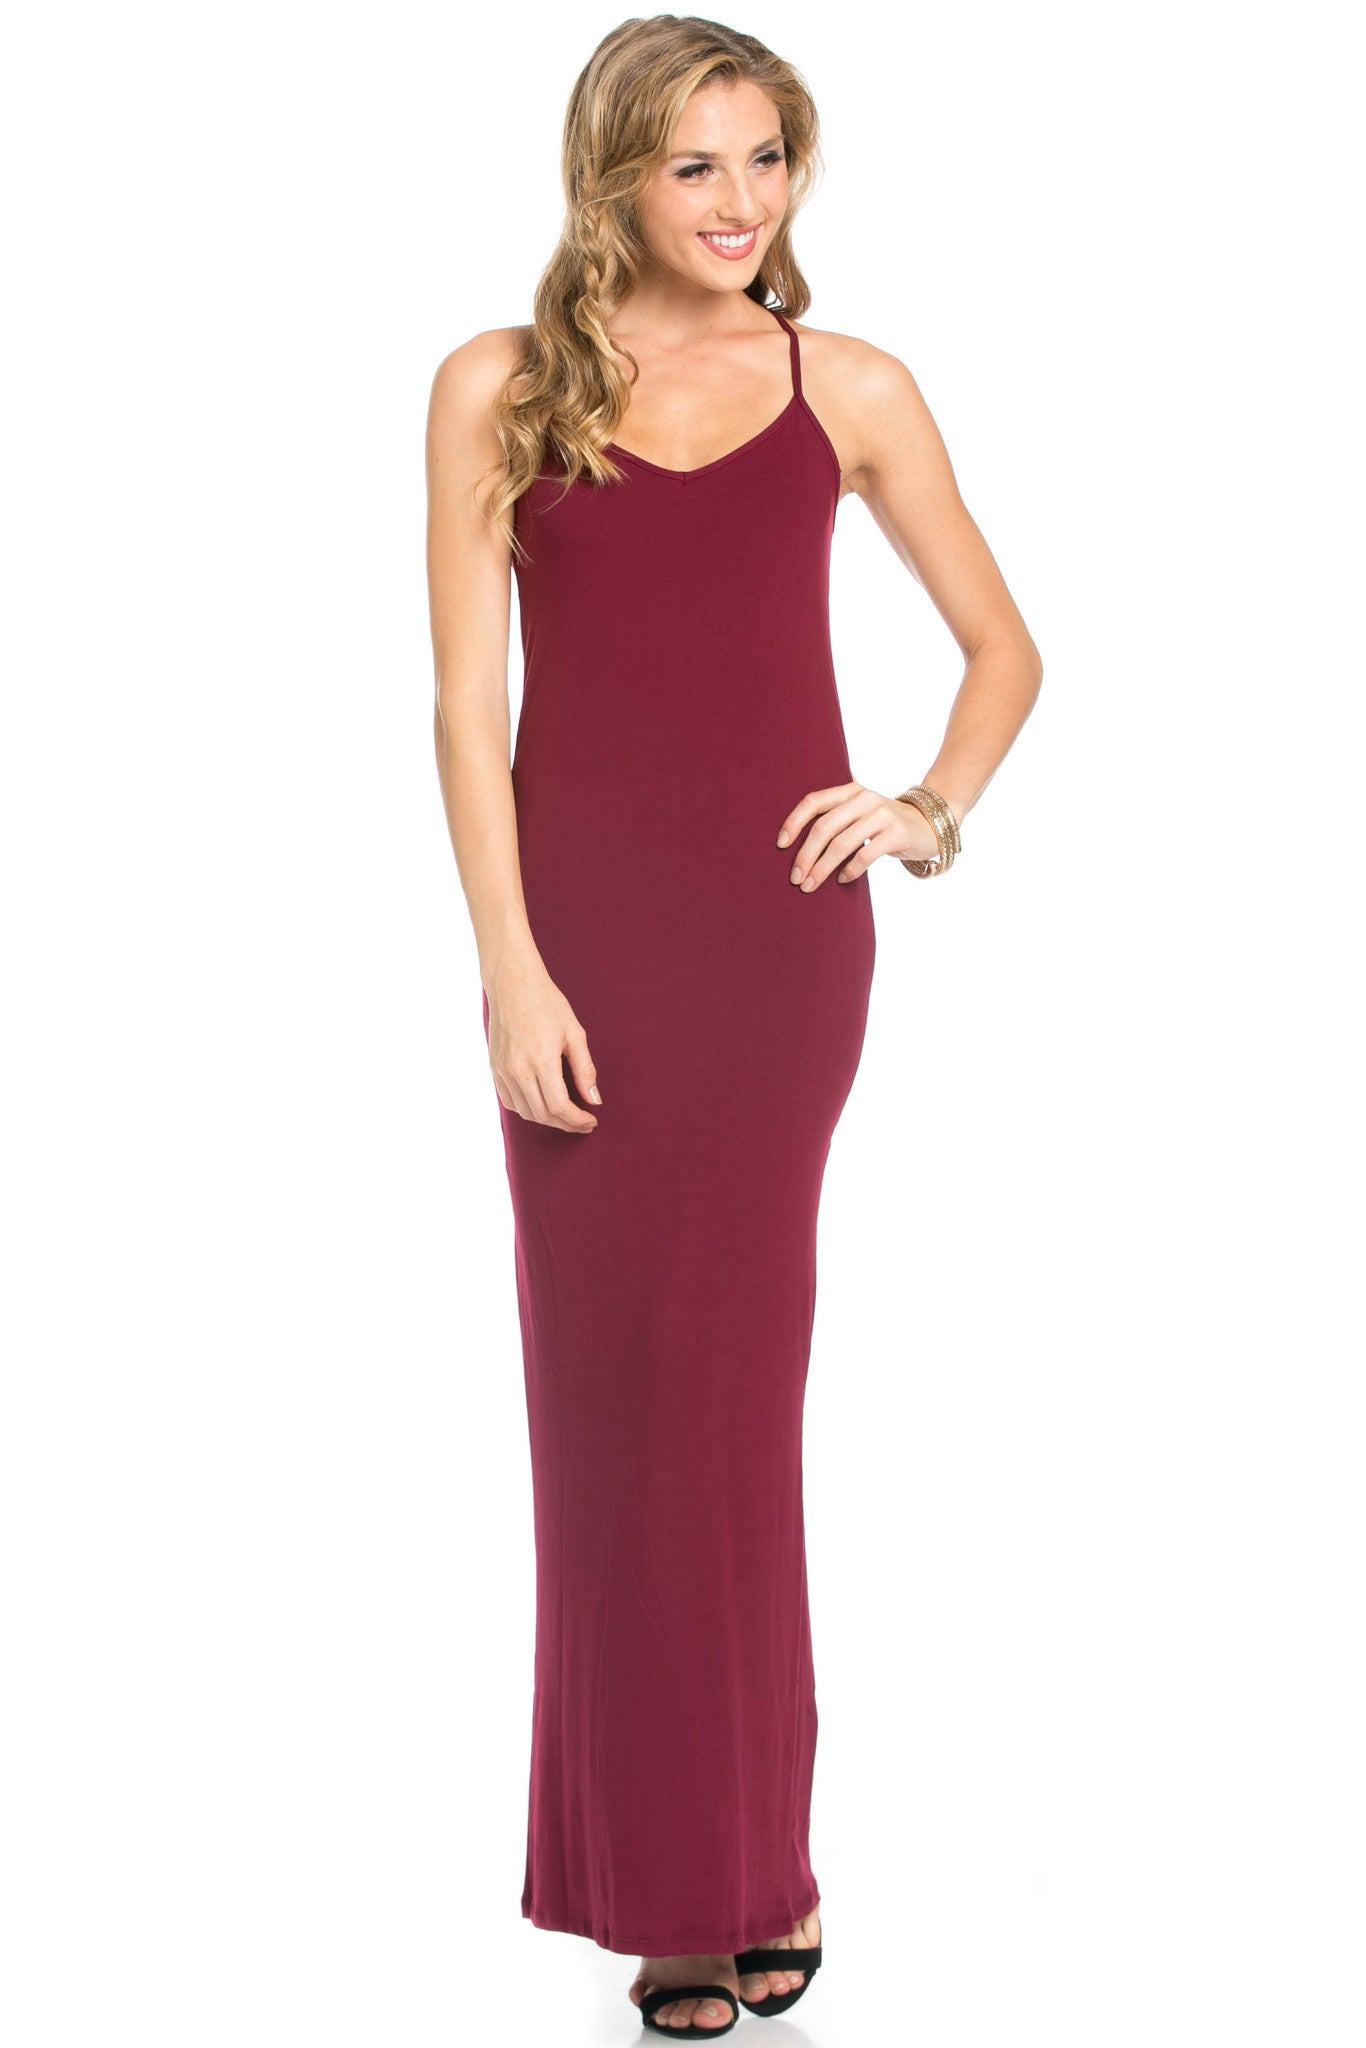 Micro Suede Burgundy Maxi Dress - Dresses - My Yuccie - 2